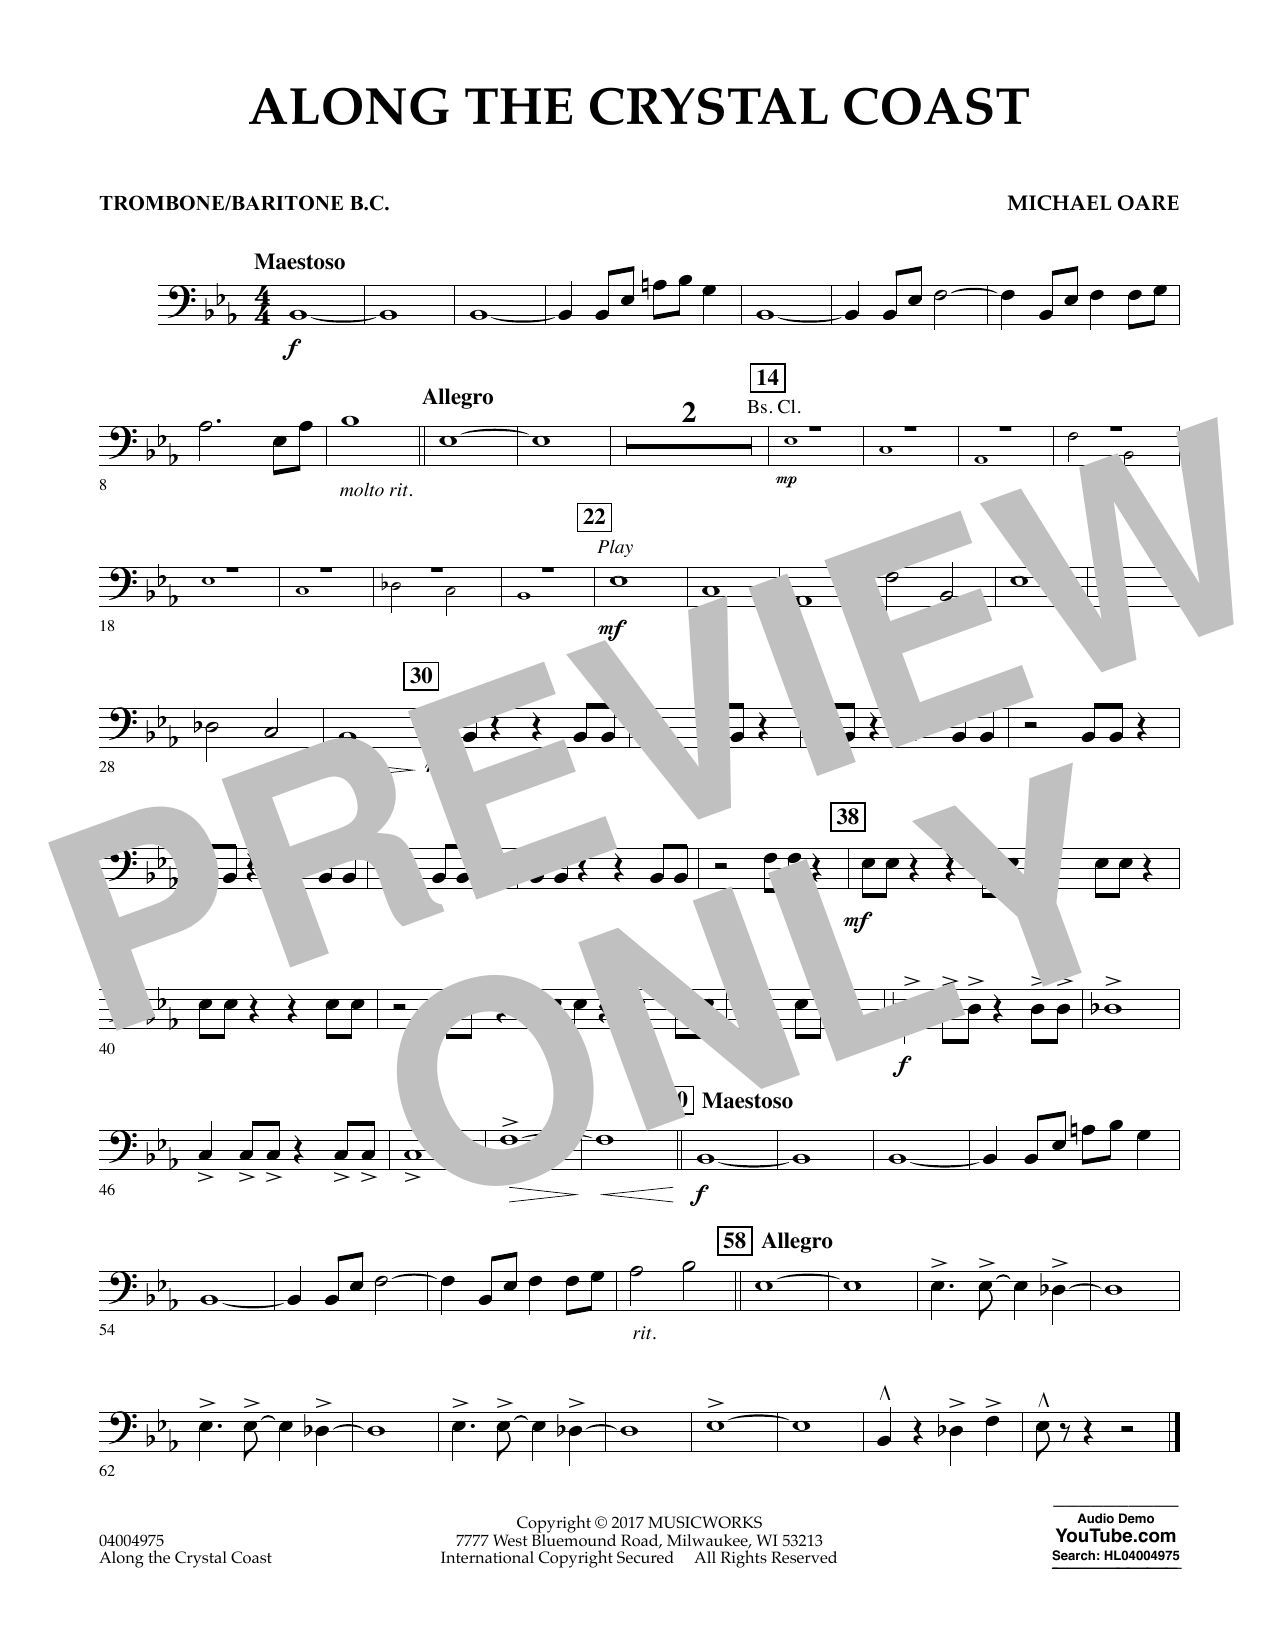 Along the Crystal Coast - Trombone/Baritone B.C. Sheet Music